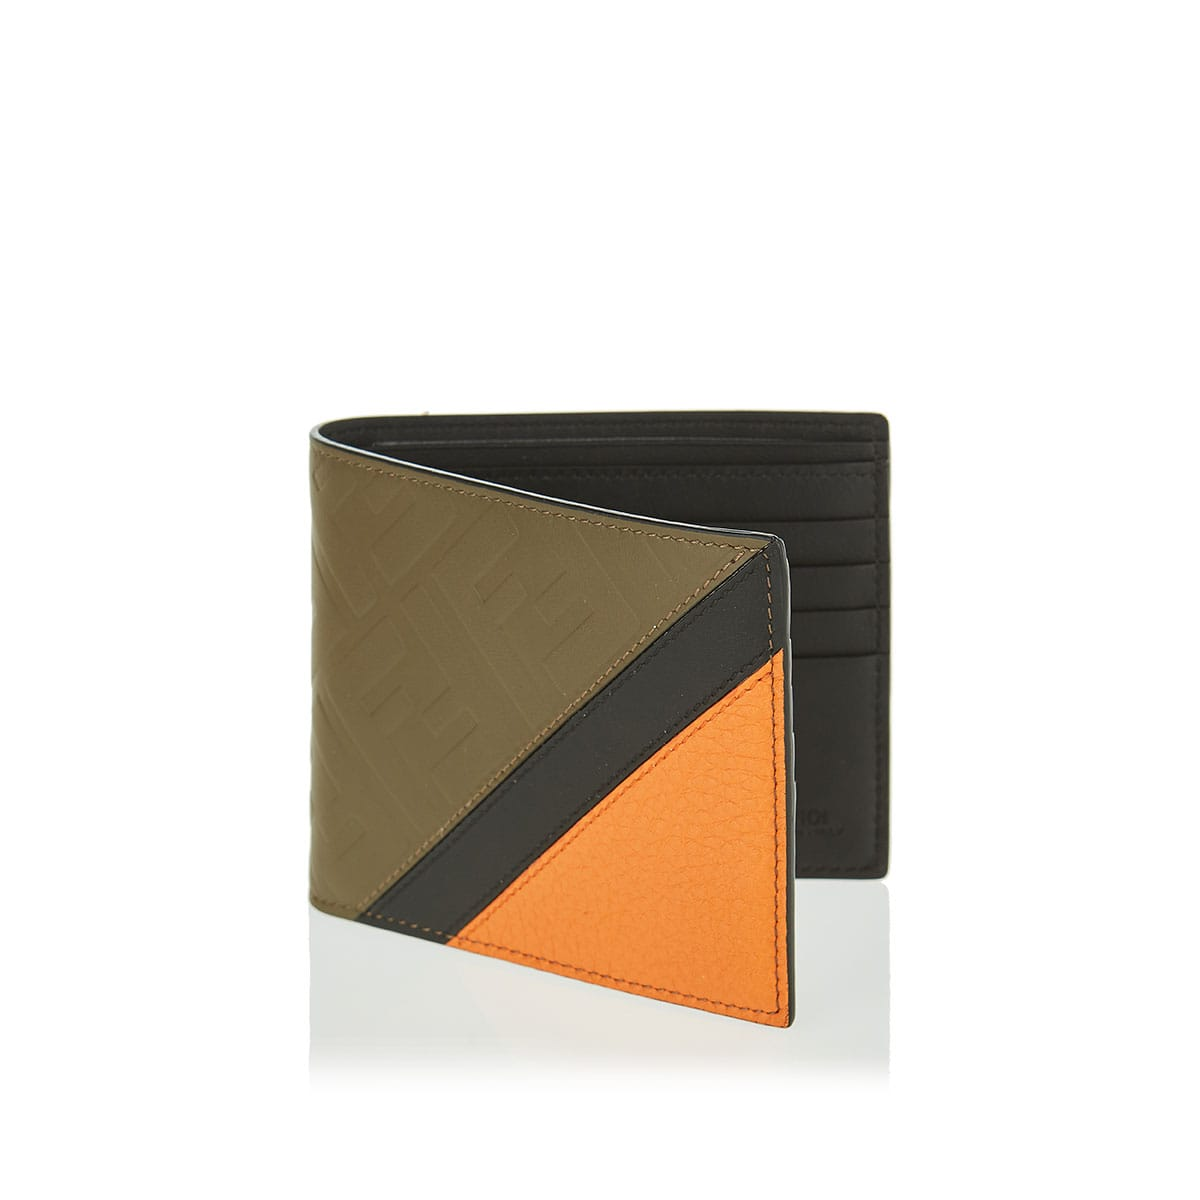 FF leather bi-fold wallet